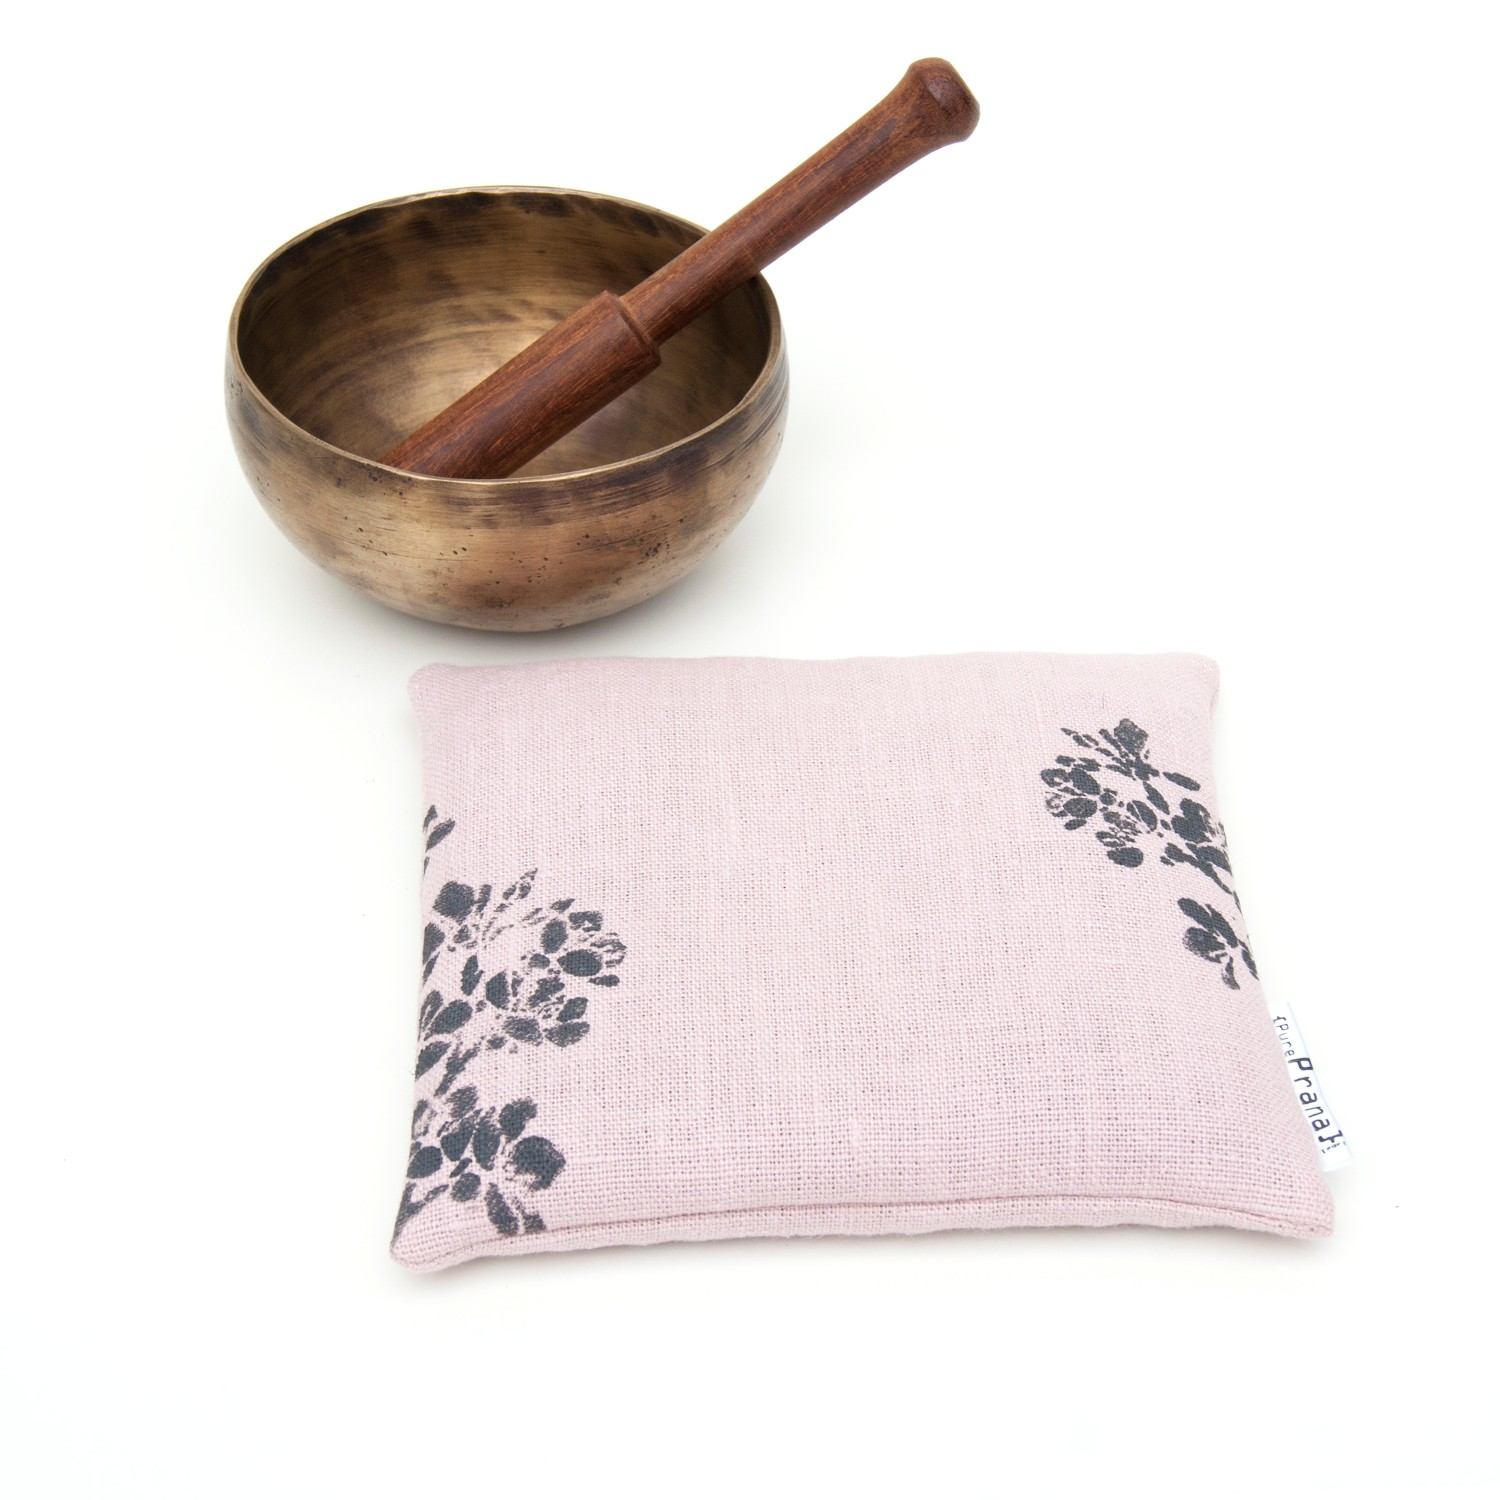 Singing bowl cushion Cherry Blossom